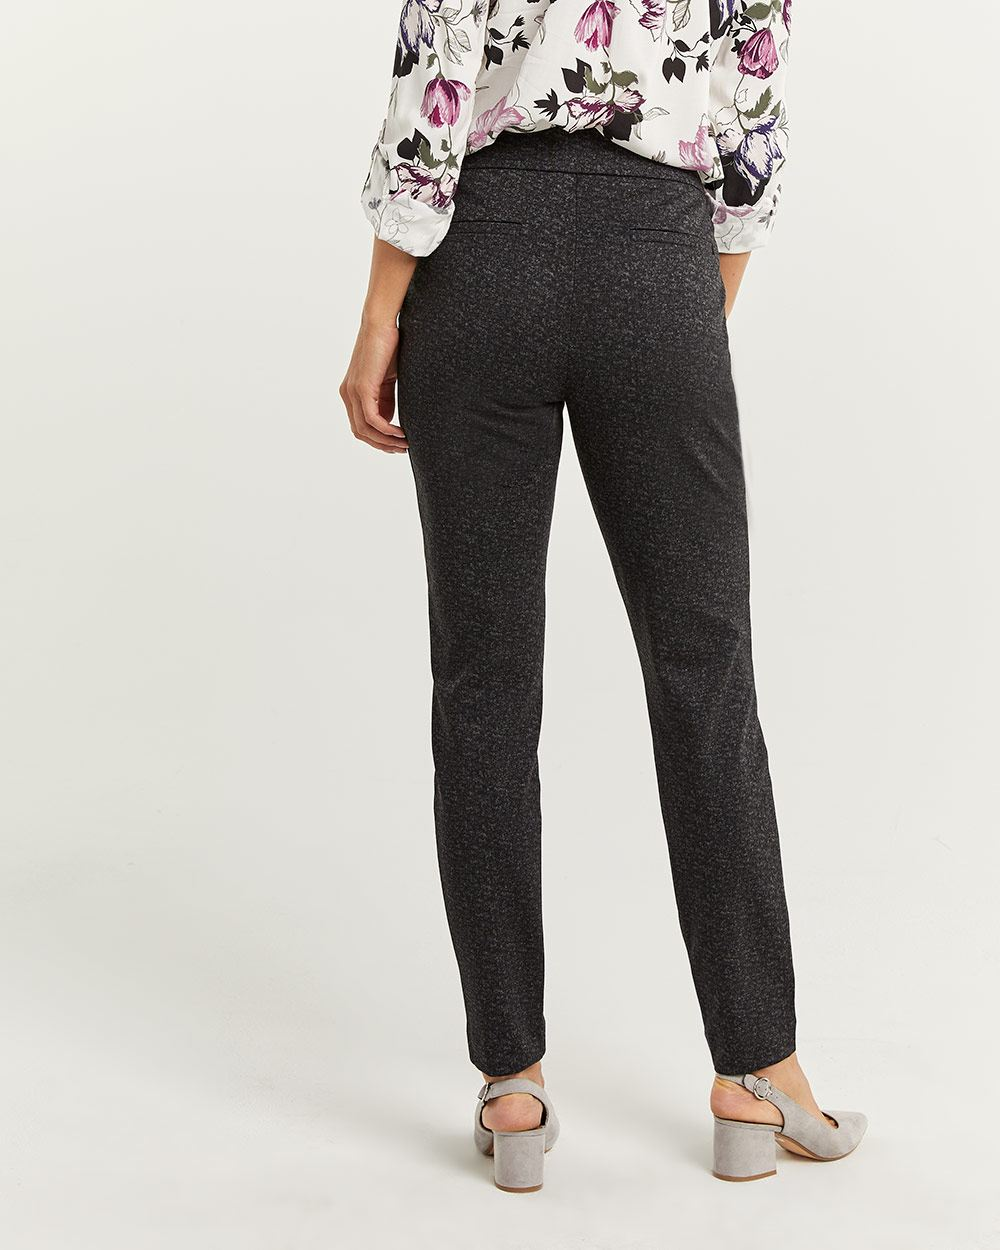 The Modern Stretch Patterned Leggings - Petite